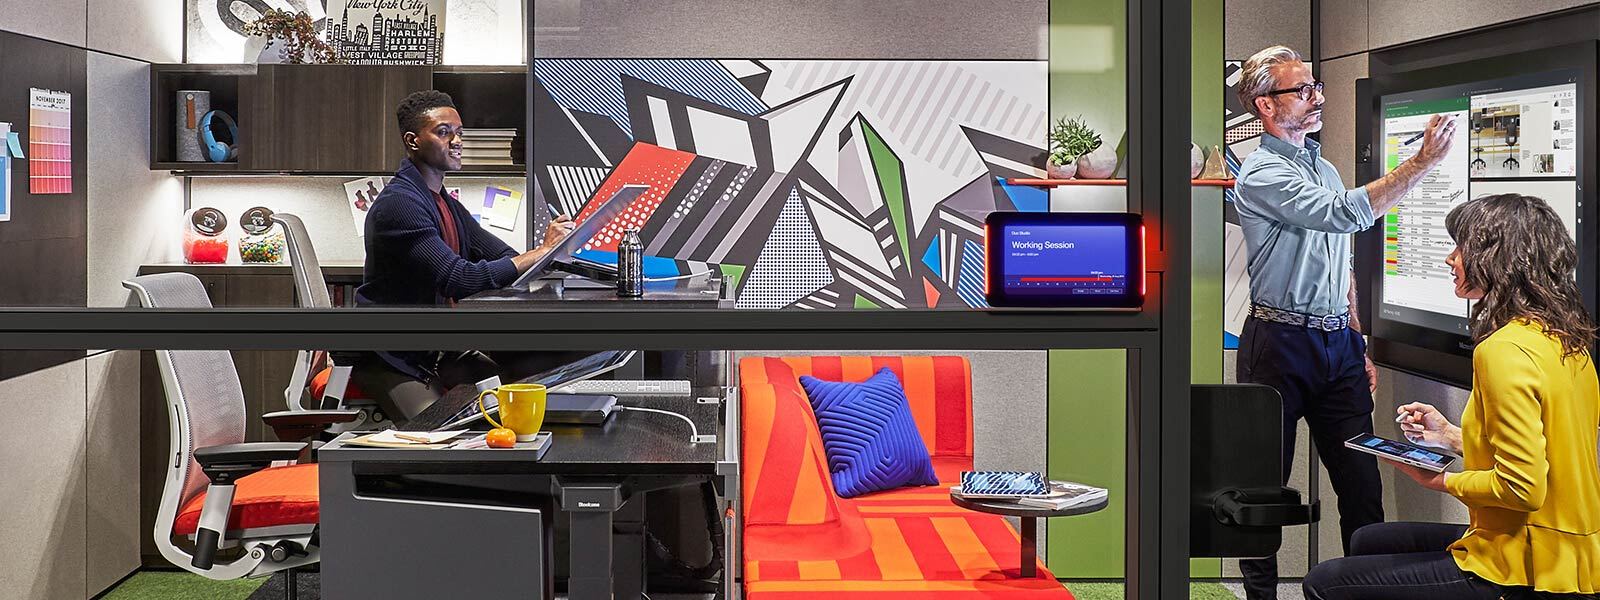 Duo Studio space designed by Surface and Steelcase.